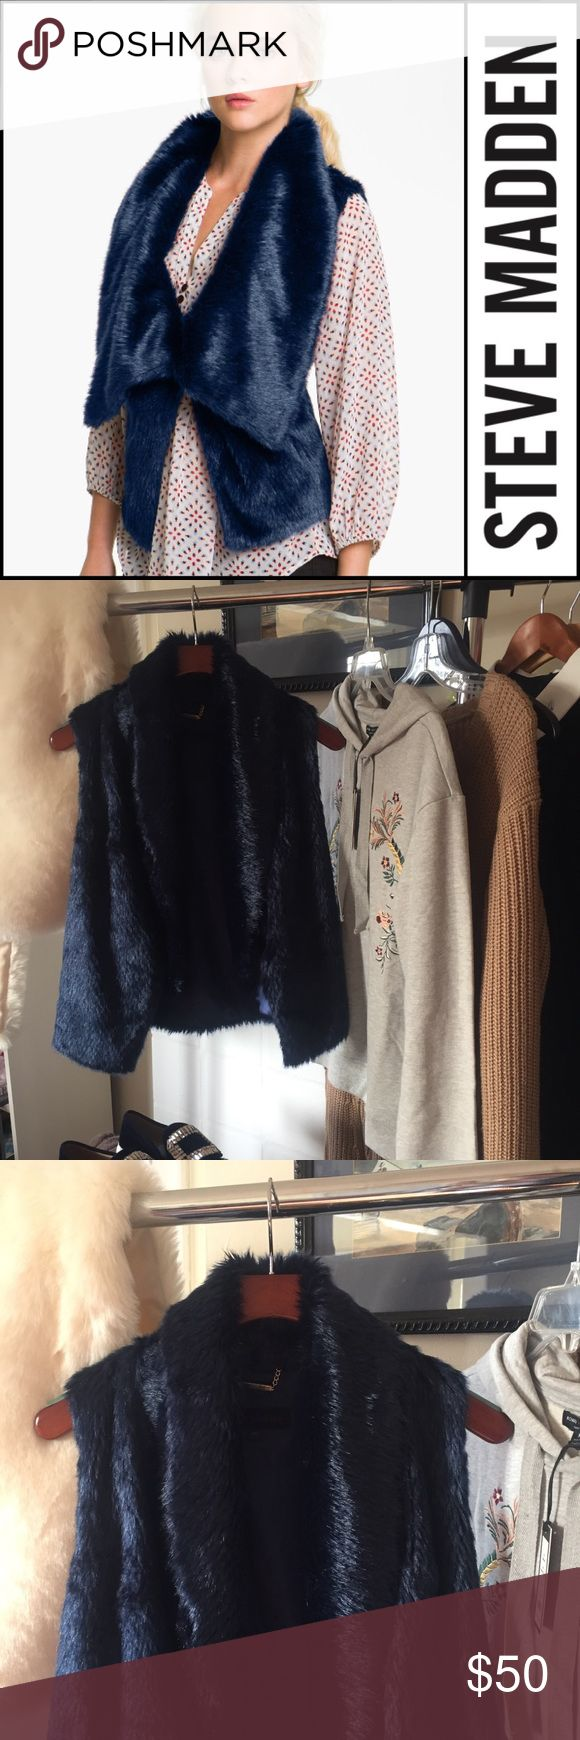 | Steve Madden | blue faux fur waistcoat | Take your look from day to night with this special addition—a blue faux fur waistcoat (or vest) from Steve Madden. Wear it open or hooked closed. Only worn once or twice. M. EUC. Steve Madden Jackets & Coats Vests